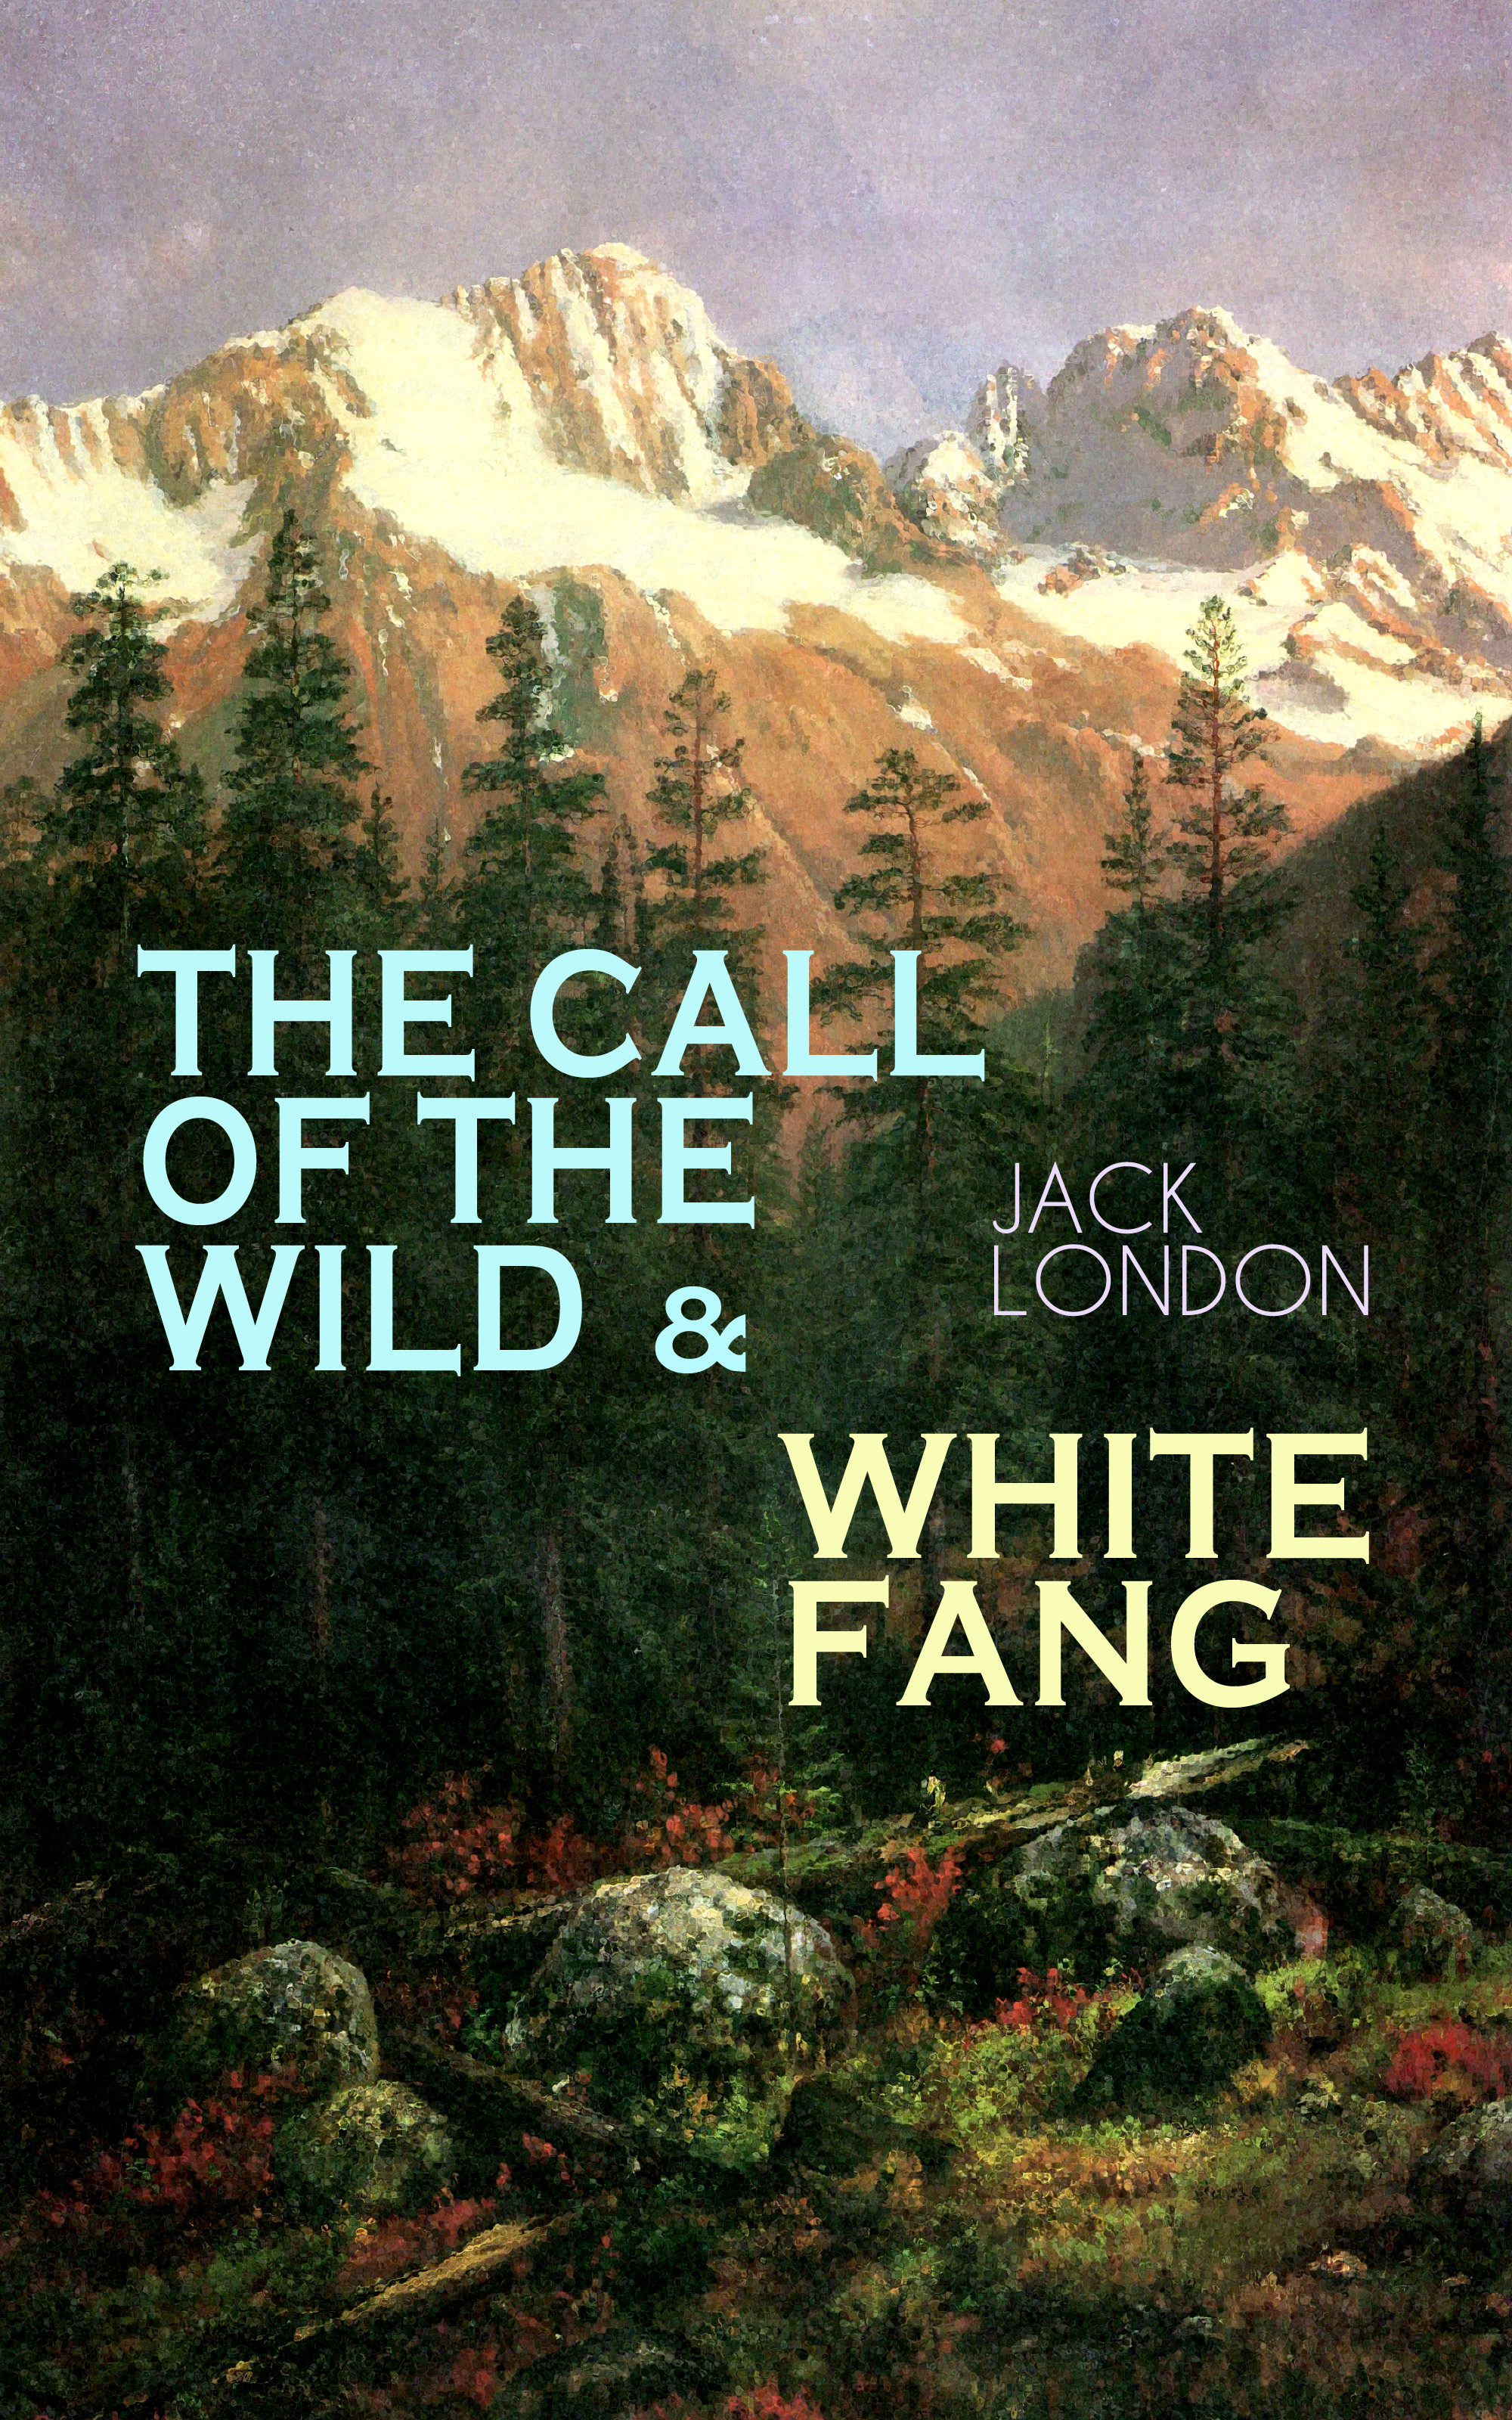 Jack London THE CALL OF THE WILD & WHITE FANG london j the call of the wild and white fang мsignet classics london